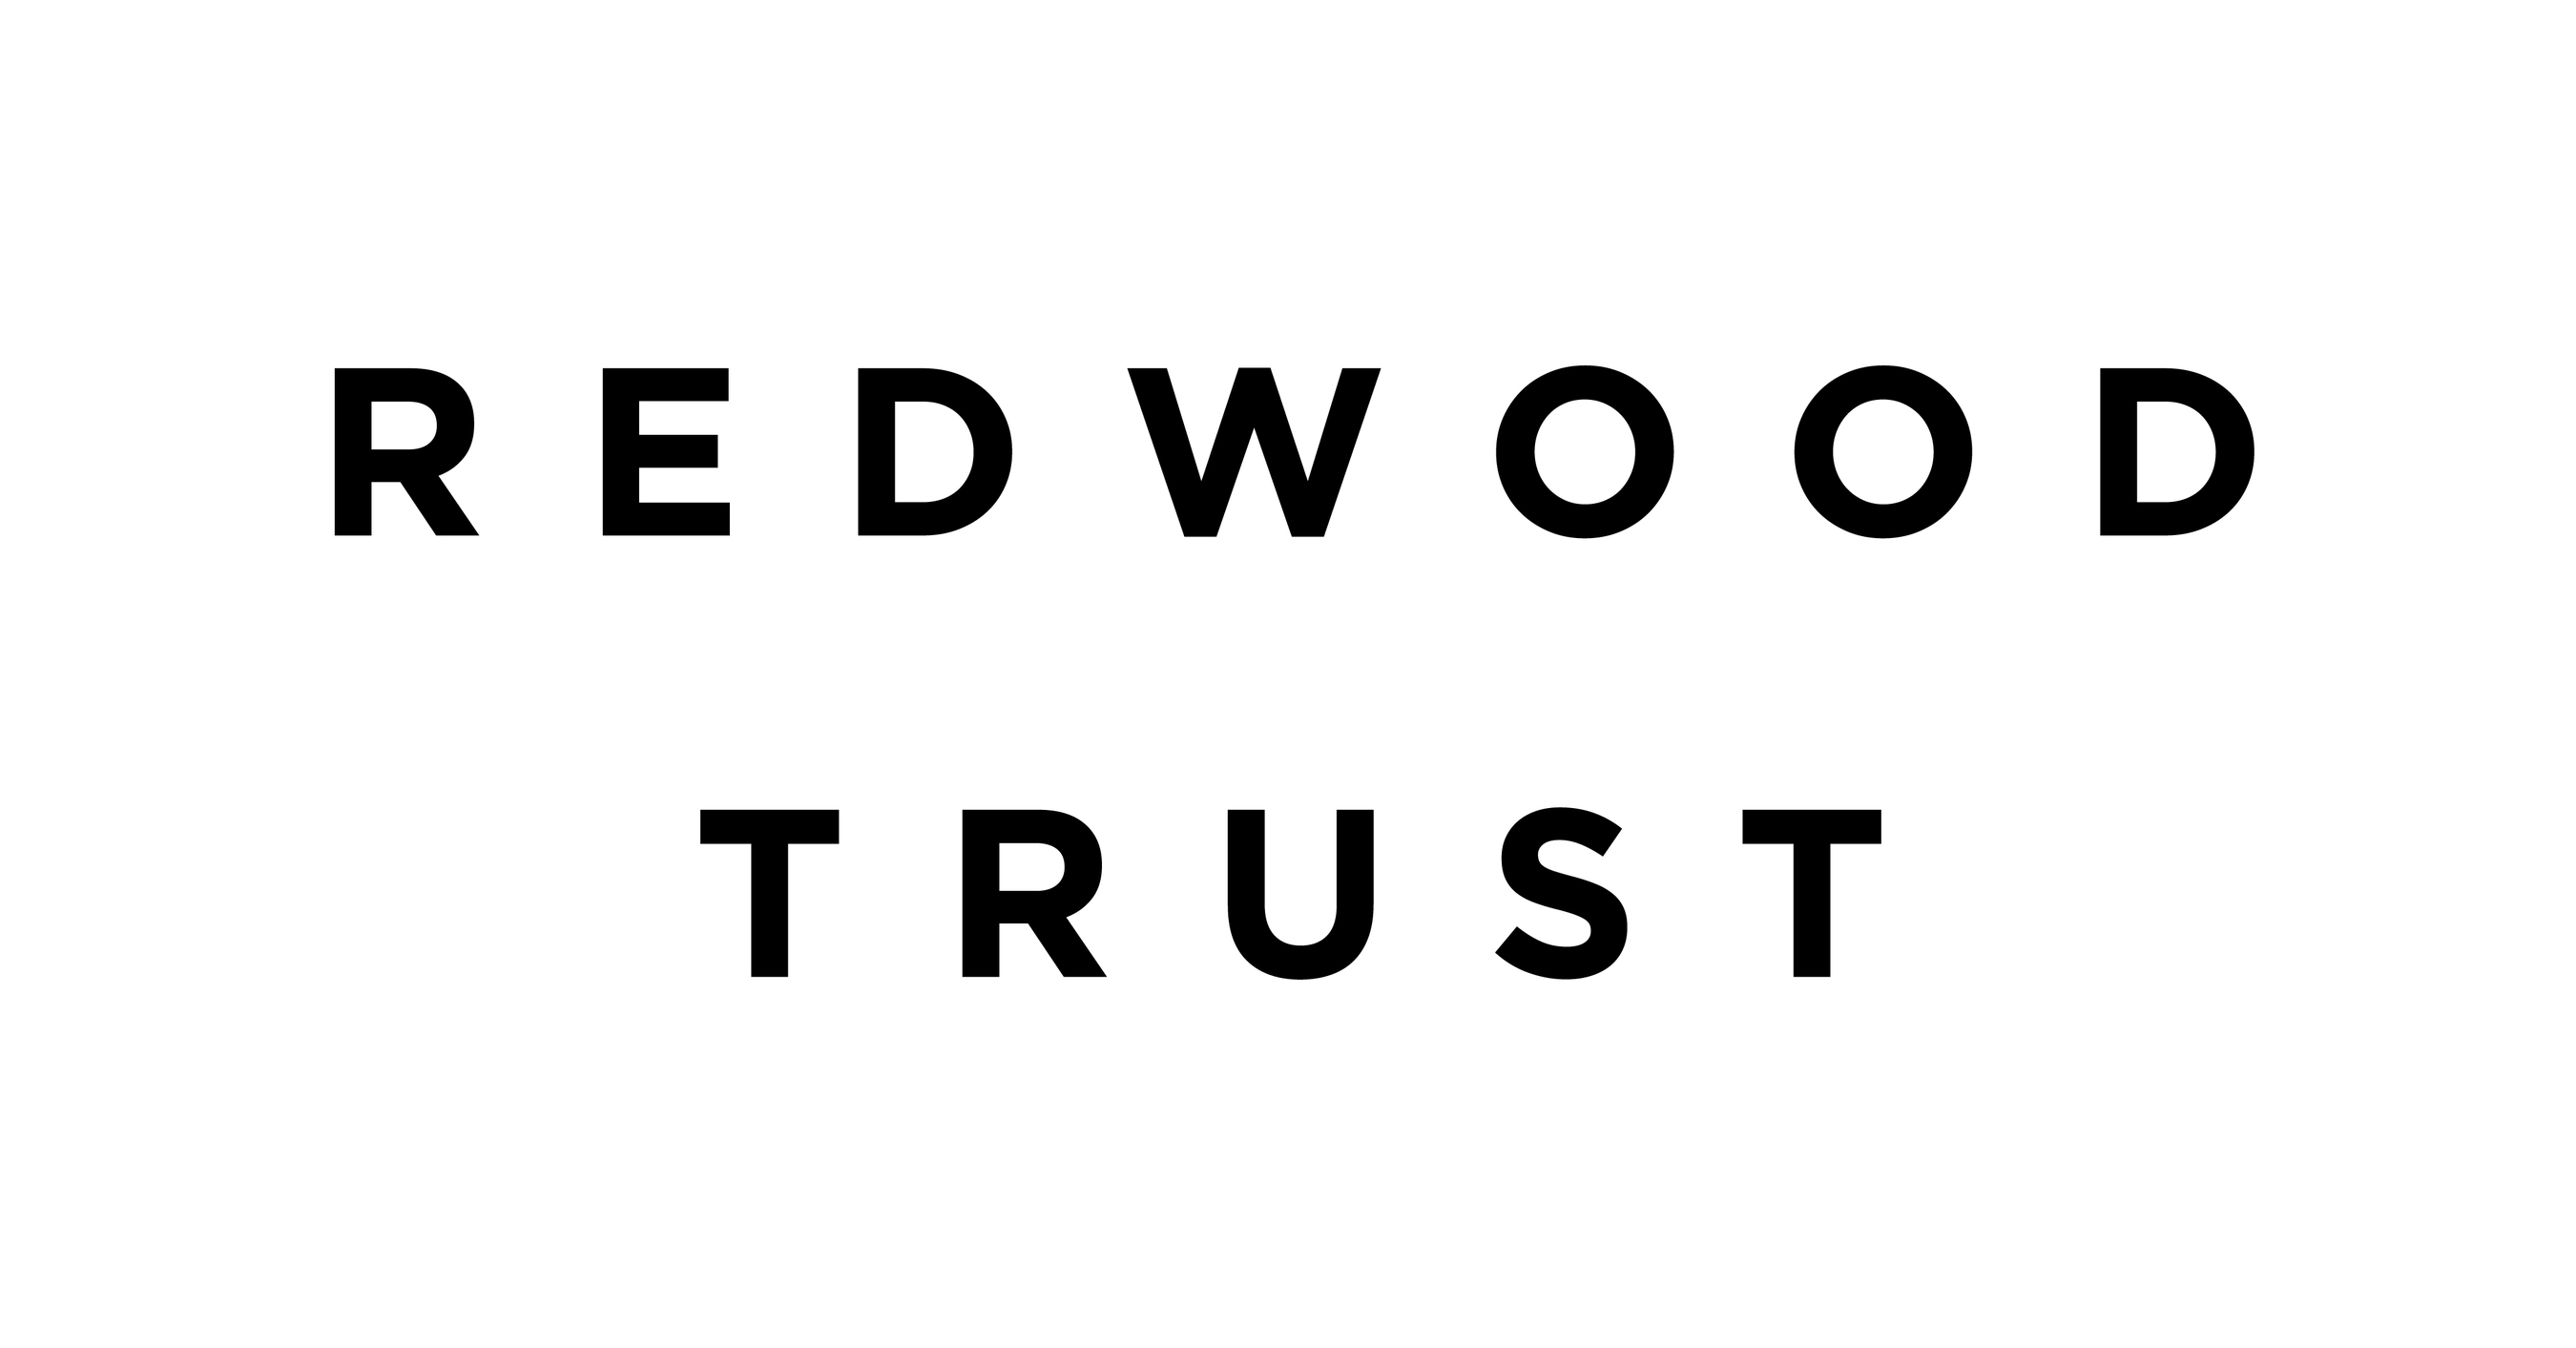 Redwood Trust Provides Company Update And Announces Date Of First Quarter 2021 Financial Results Webcast And Conference Call